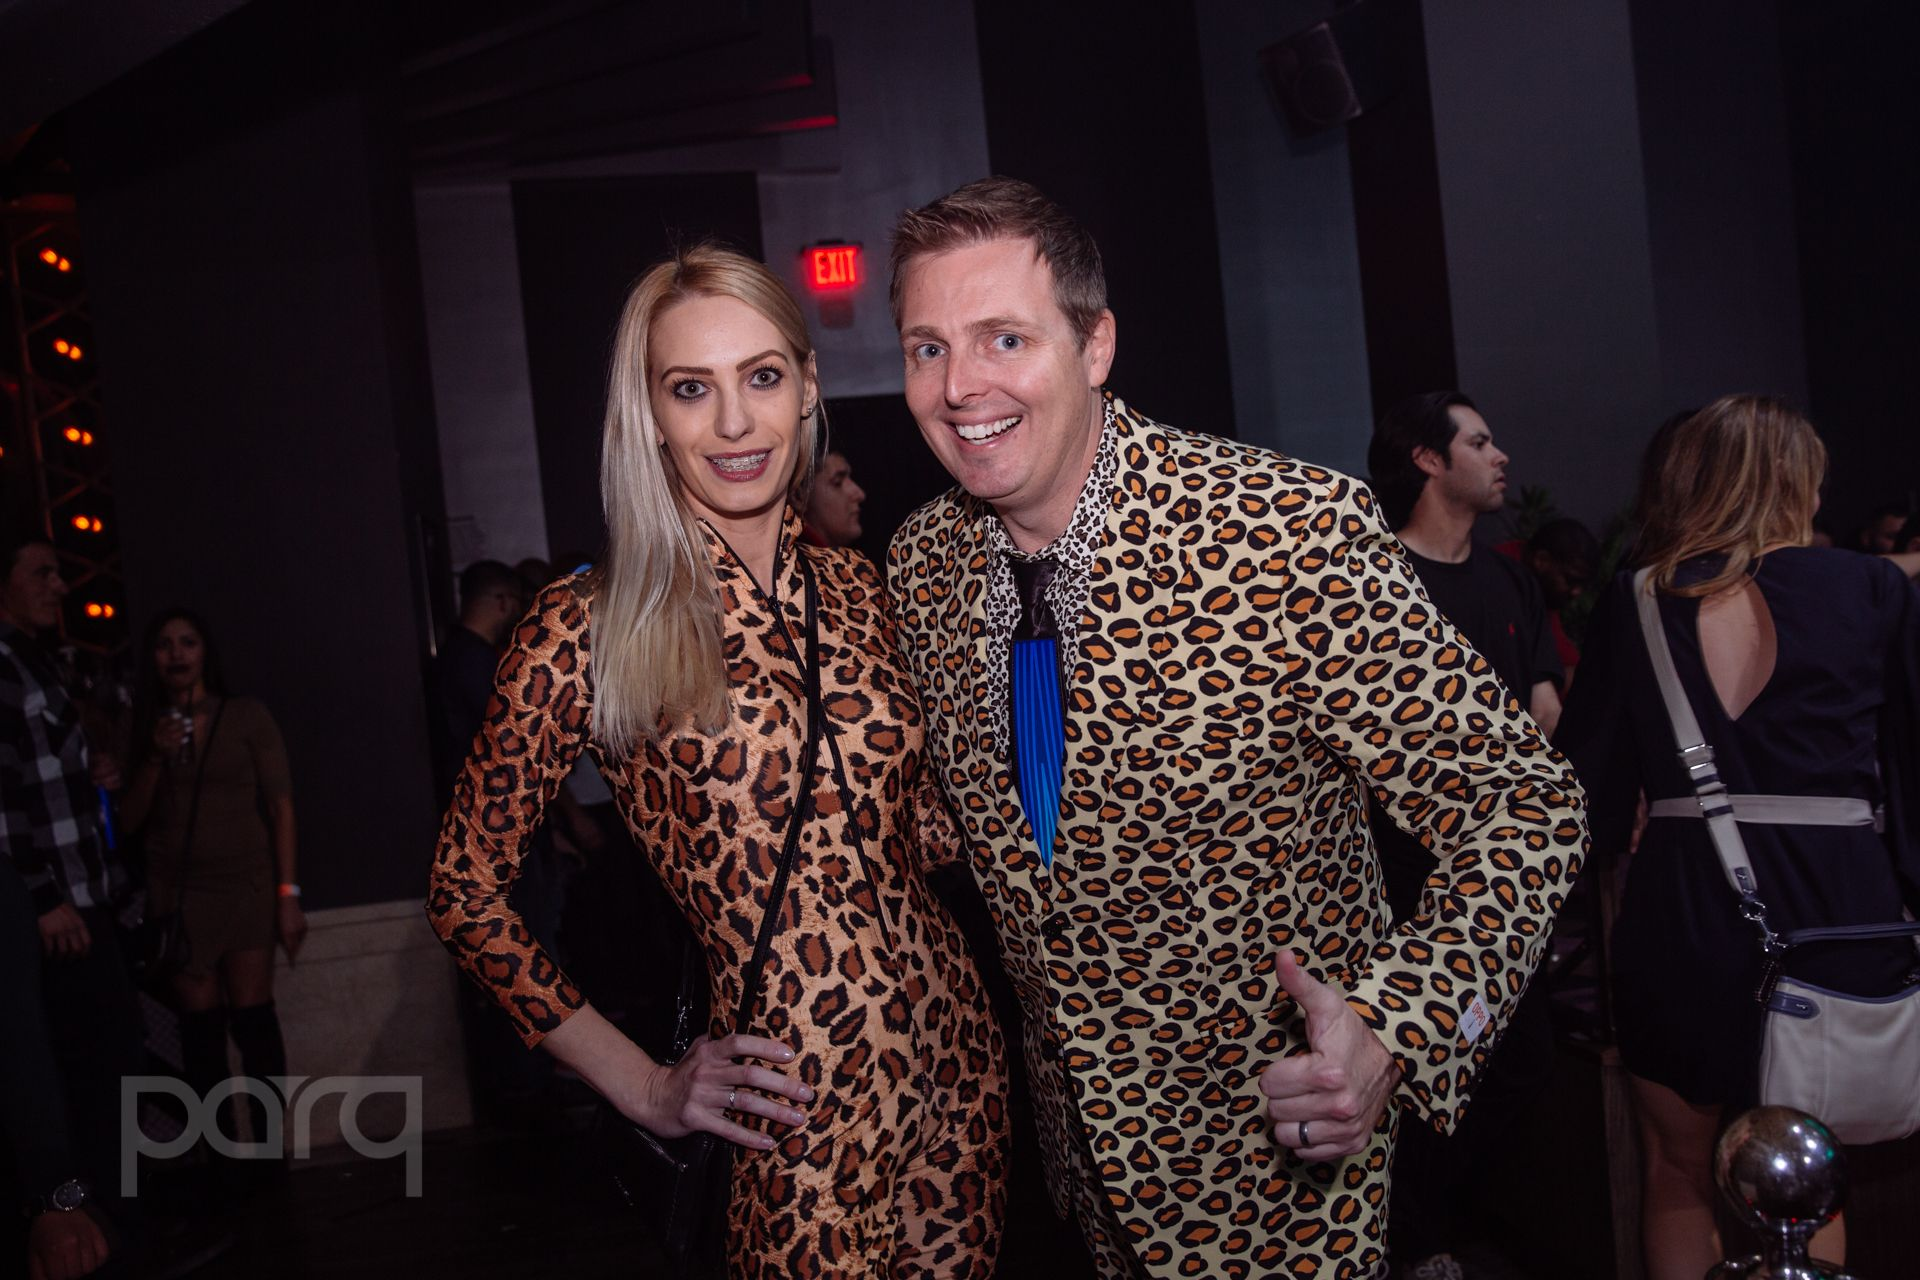 San-Diego-Nightclub-Zoo Funktion-34.jpg